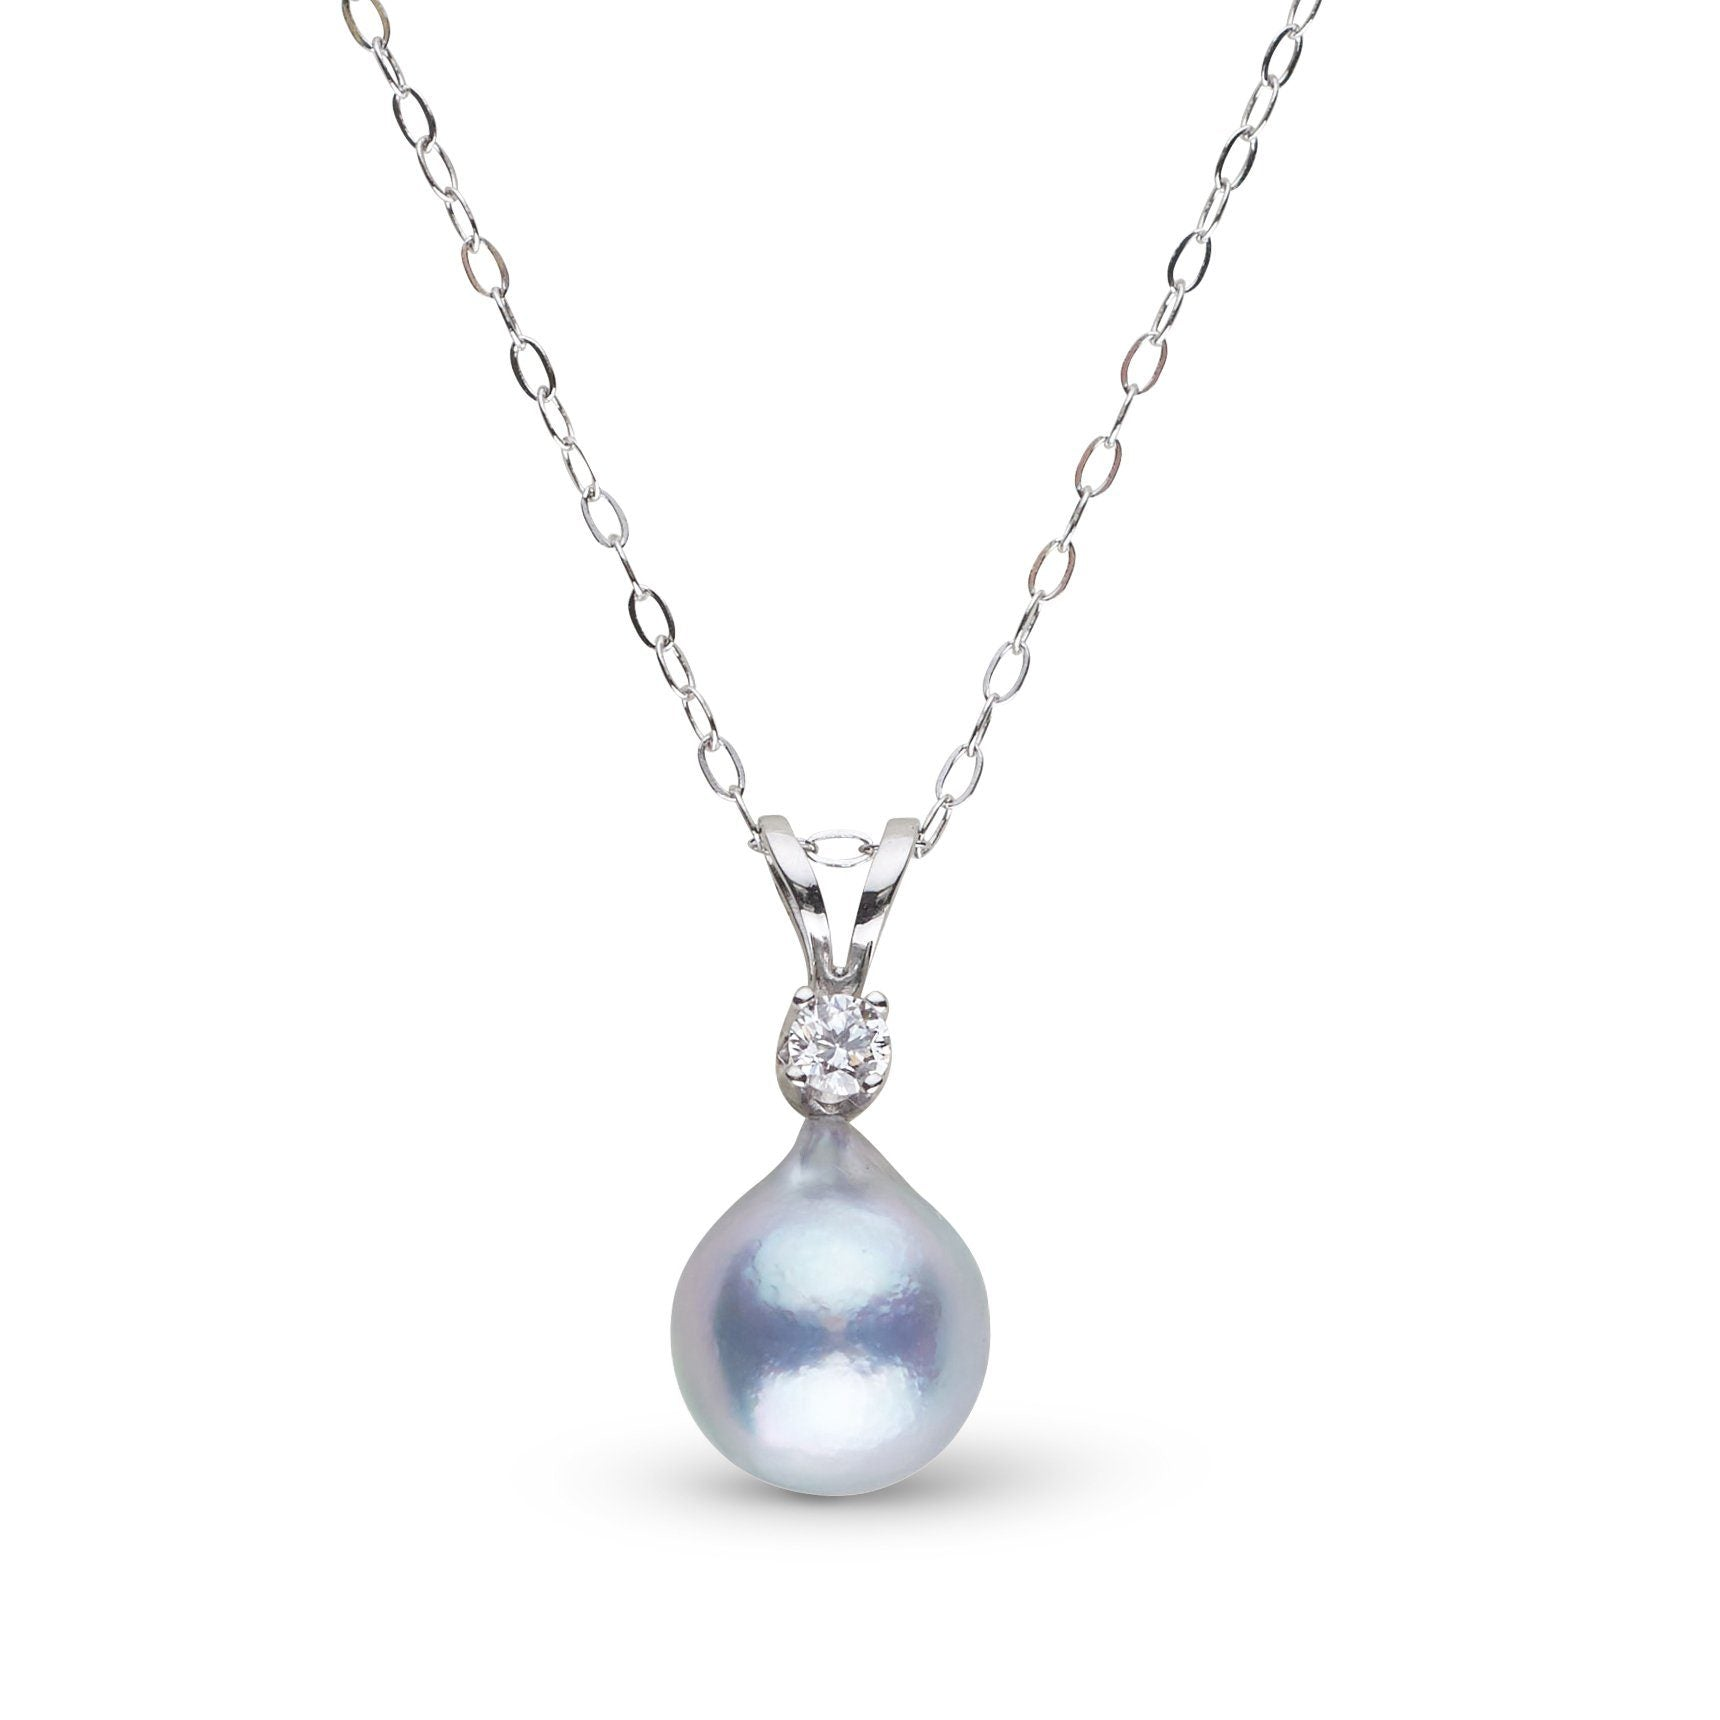 Harmony Collection 7.0-8.0 mm Silver Blue Akoya Pearl Pendant